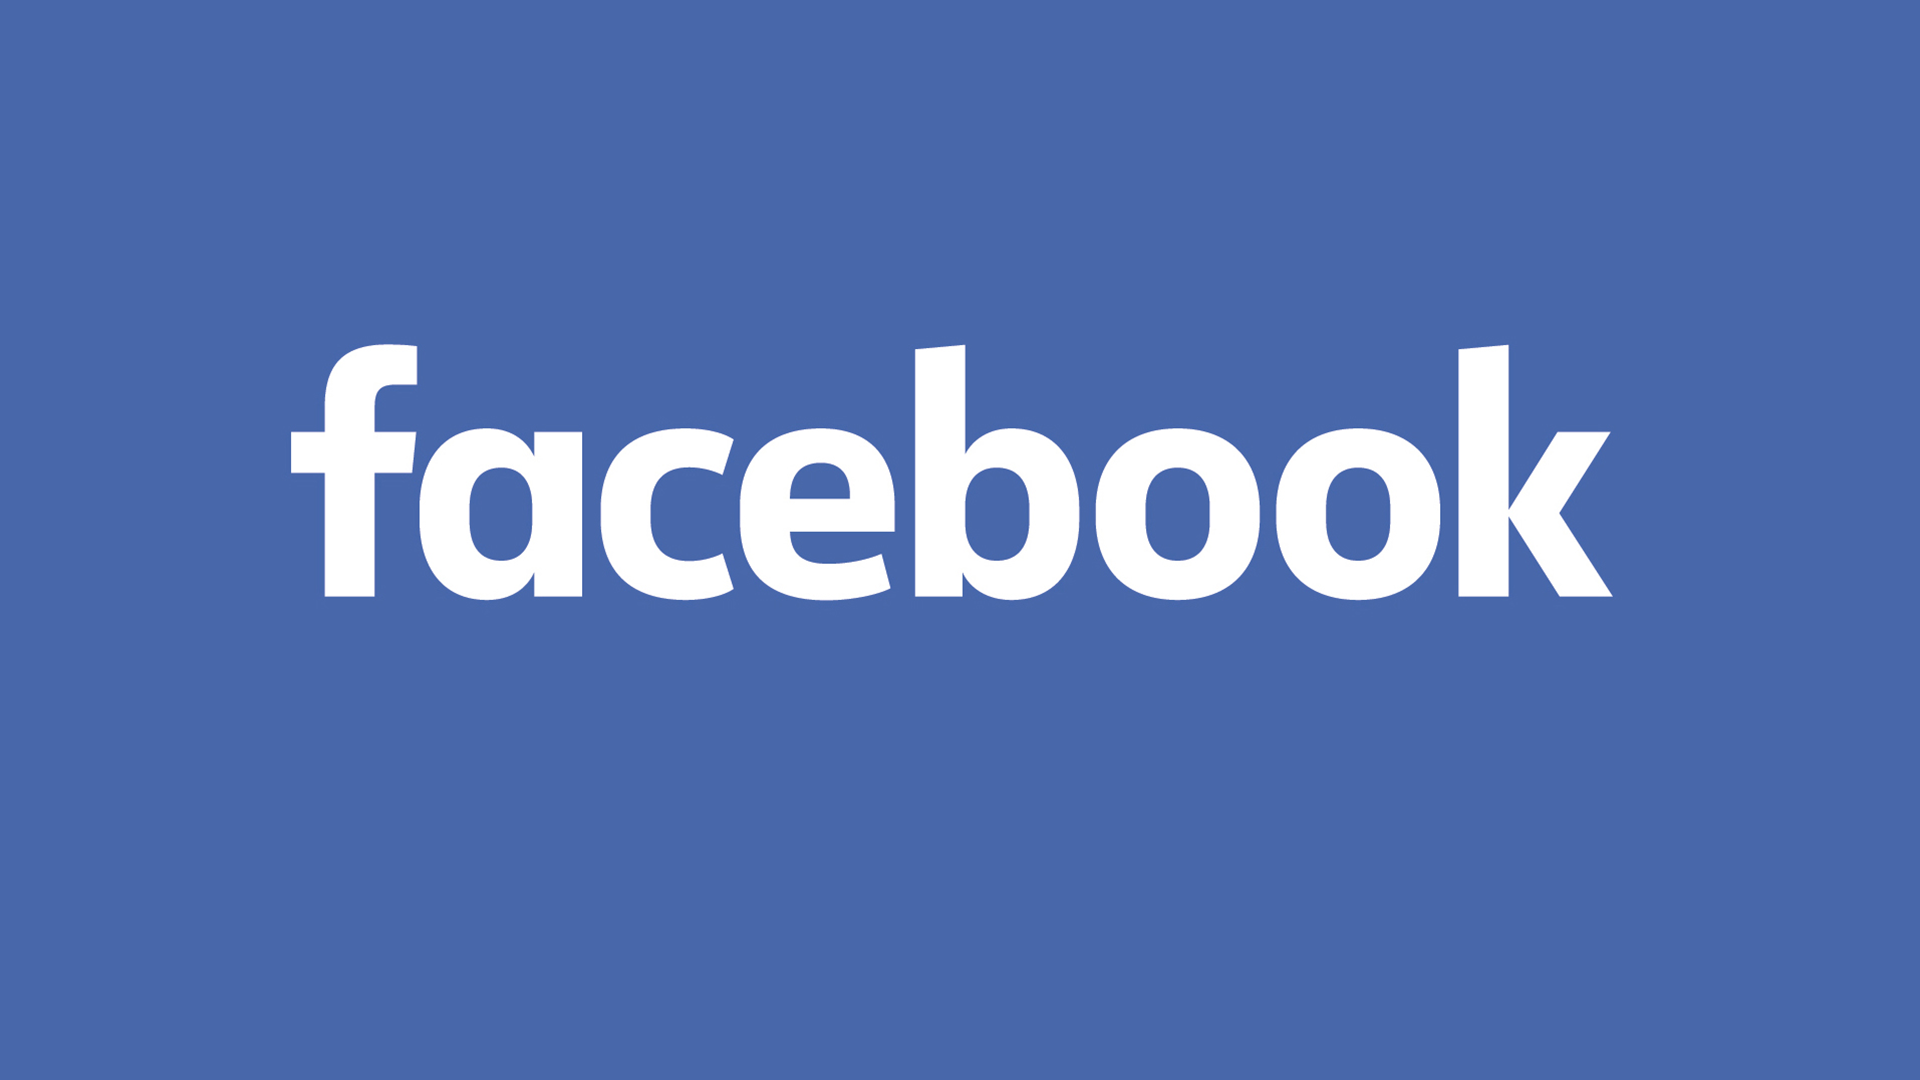 Facebook Reality Labs Liquid Crystal Research Awards 2020 (Up to $11,000 in prizes)